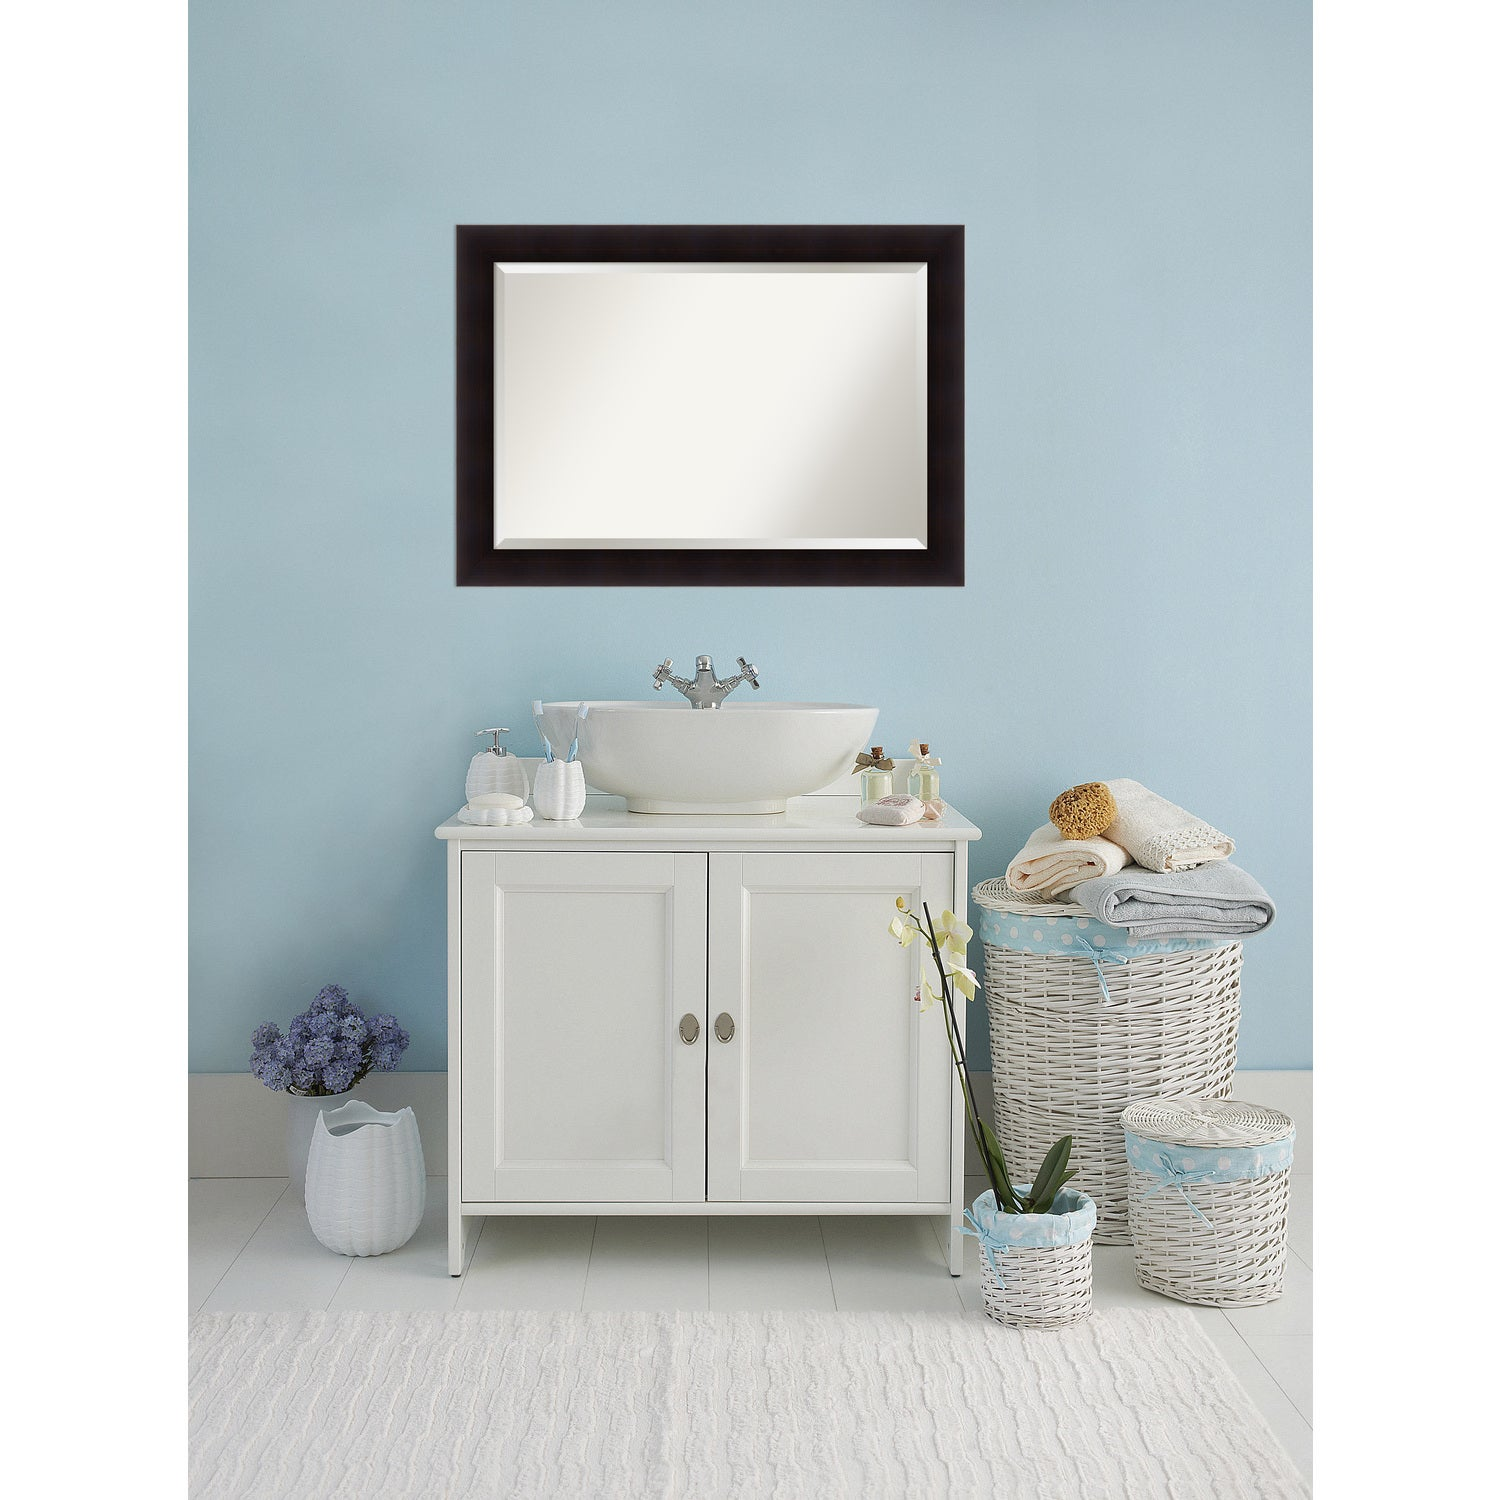 Bathroom Mirror Extra Large Portico Espresso 42 X 30 Inch Brown Free Shipping Today 15342323